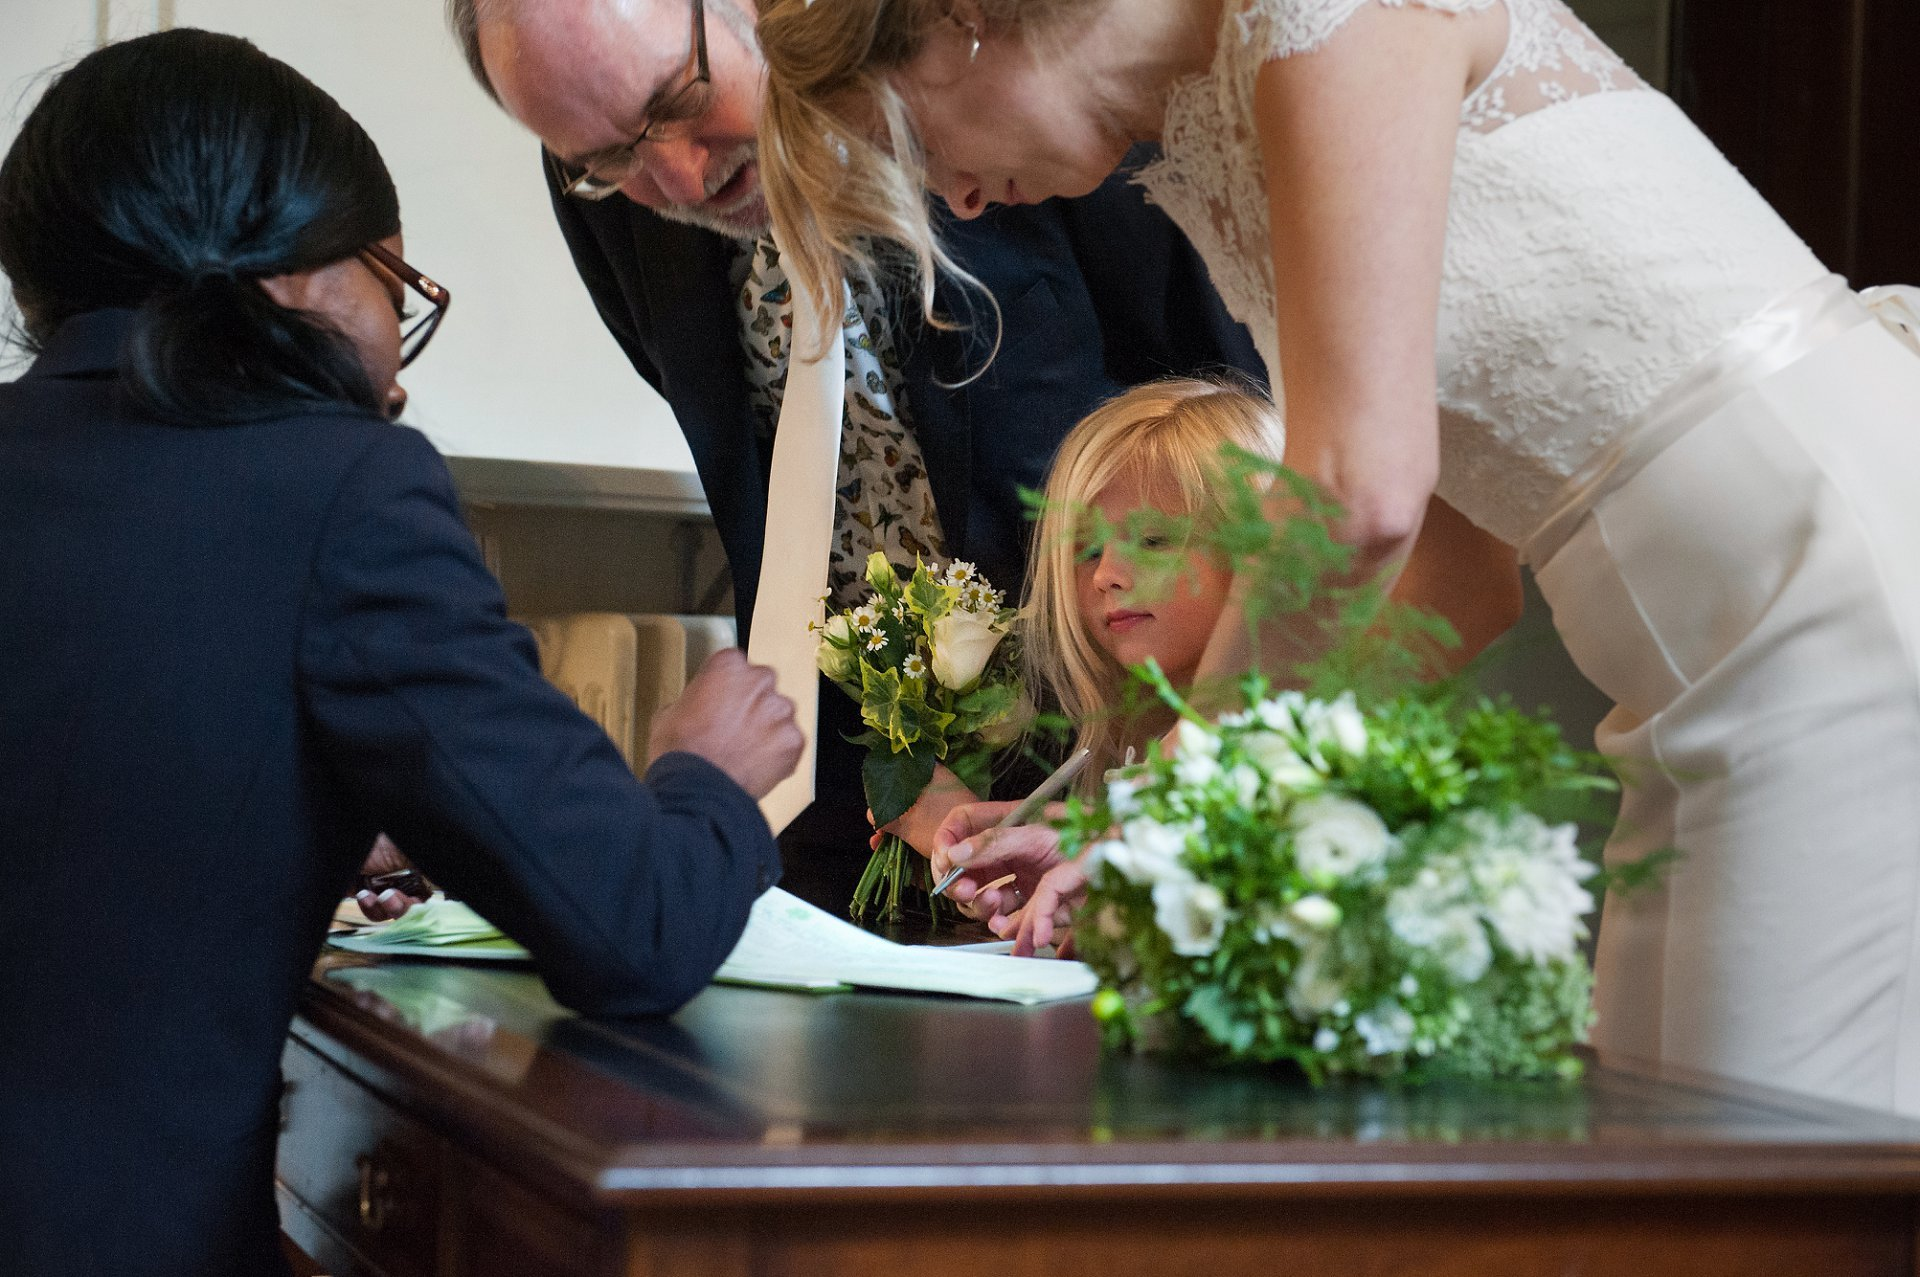 A bride's daughter and father look on as the bride comples her marriage license at Fulham Palace